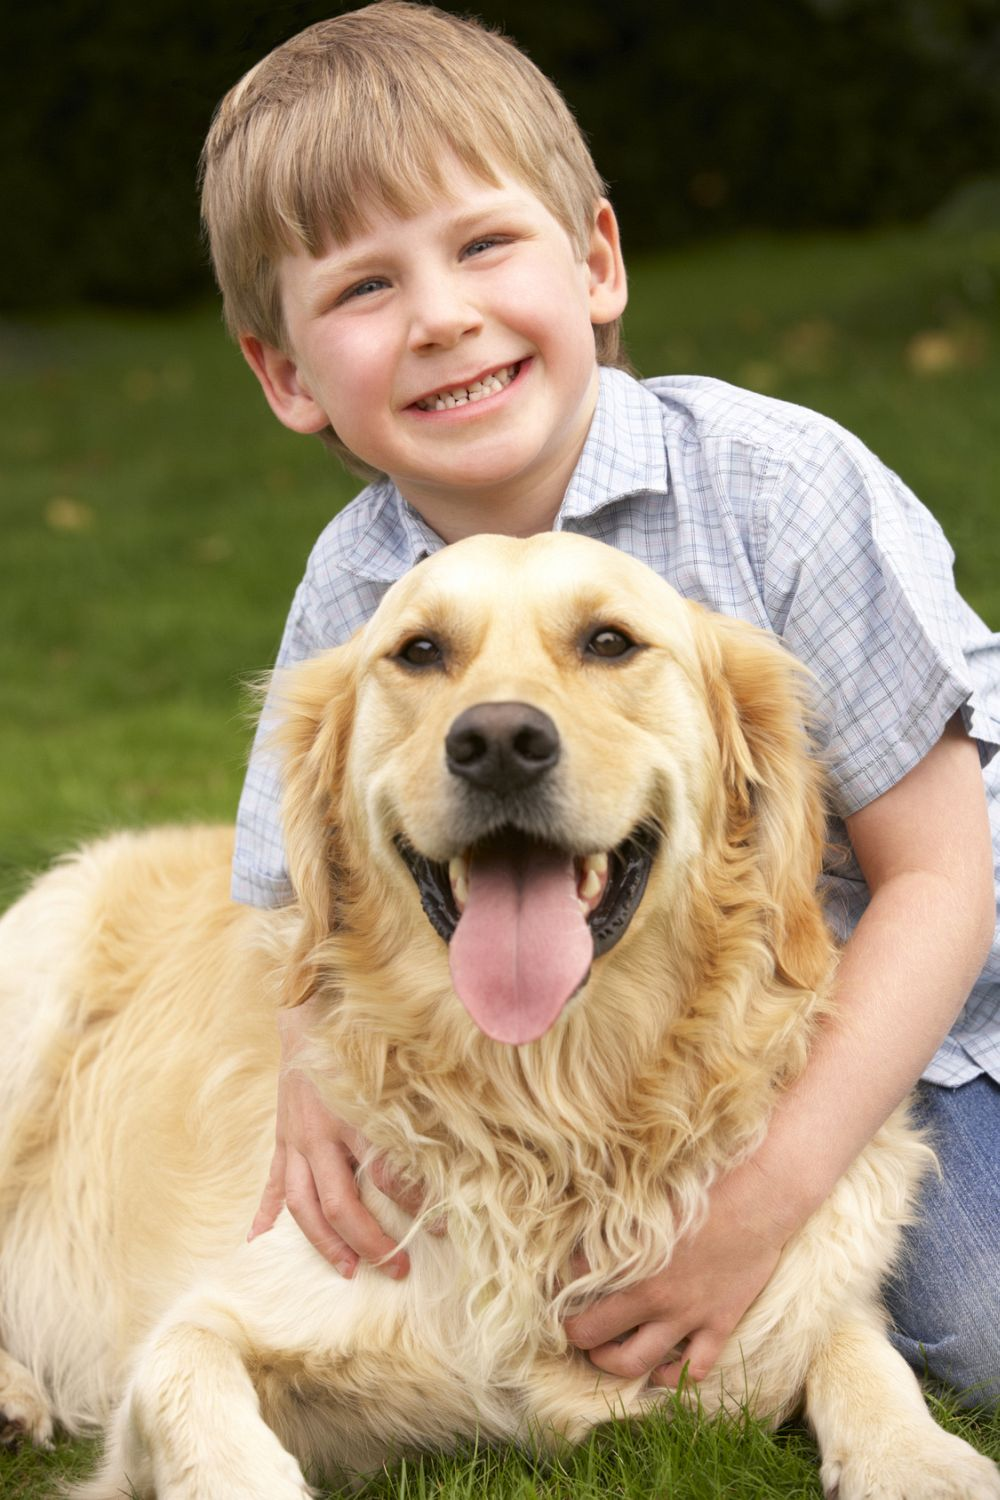 Golden Retriever als Therapiehund